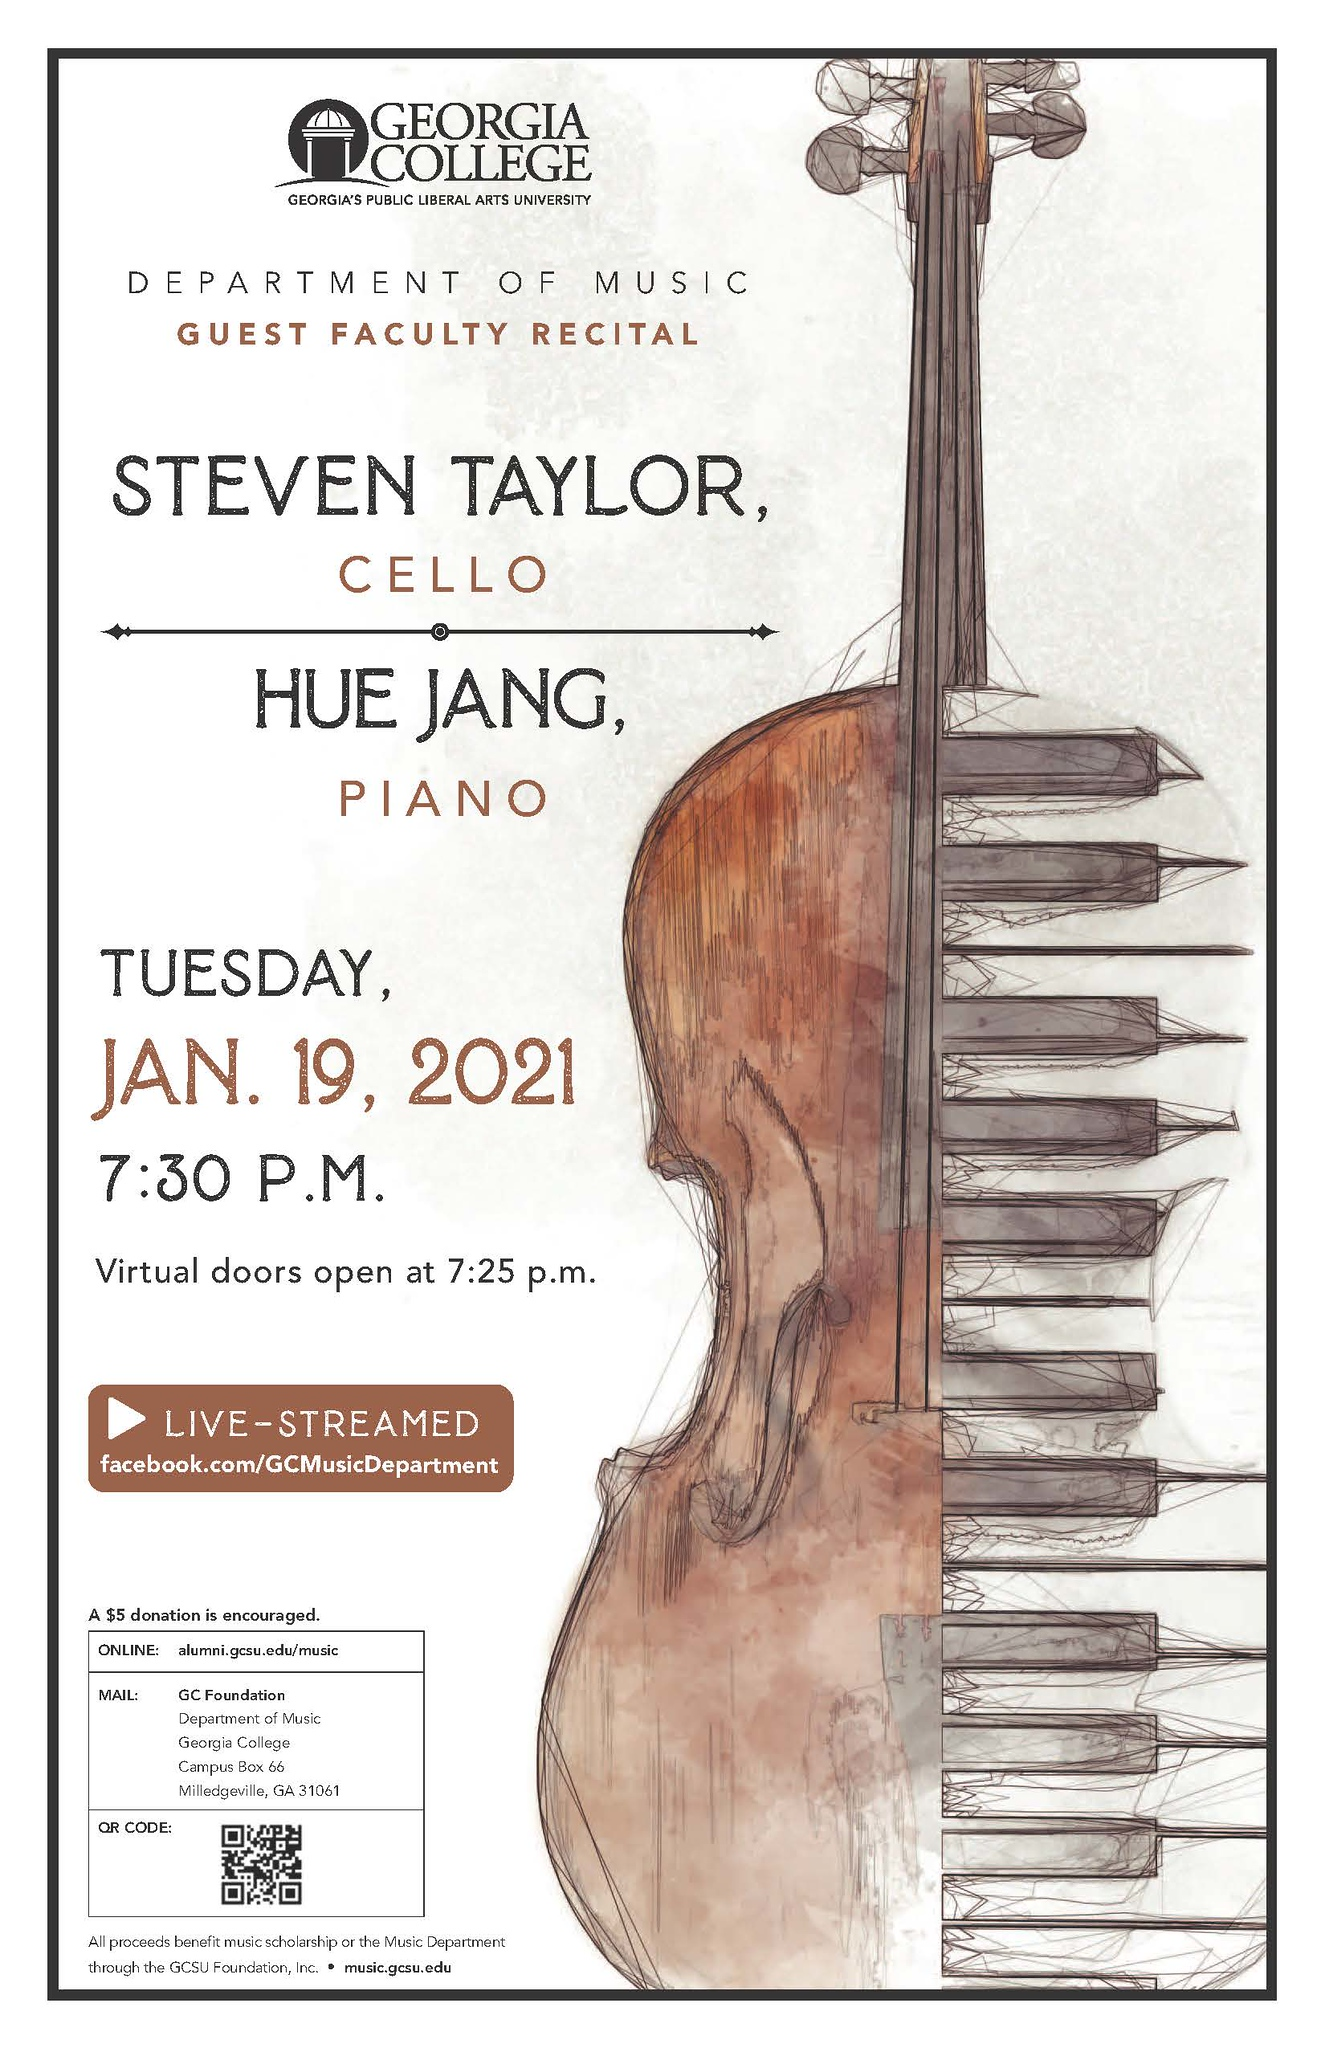 Please join us Tuesday, Jan. 19, for this recital.